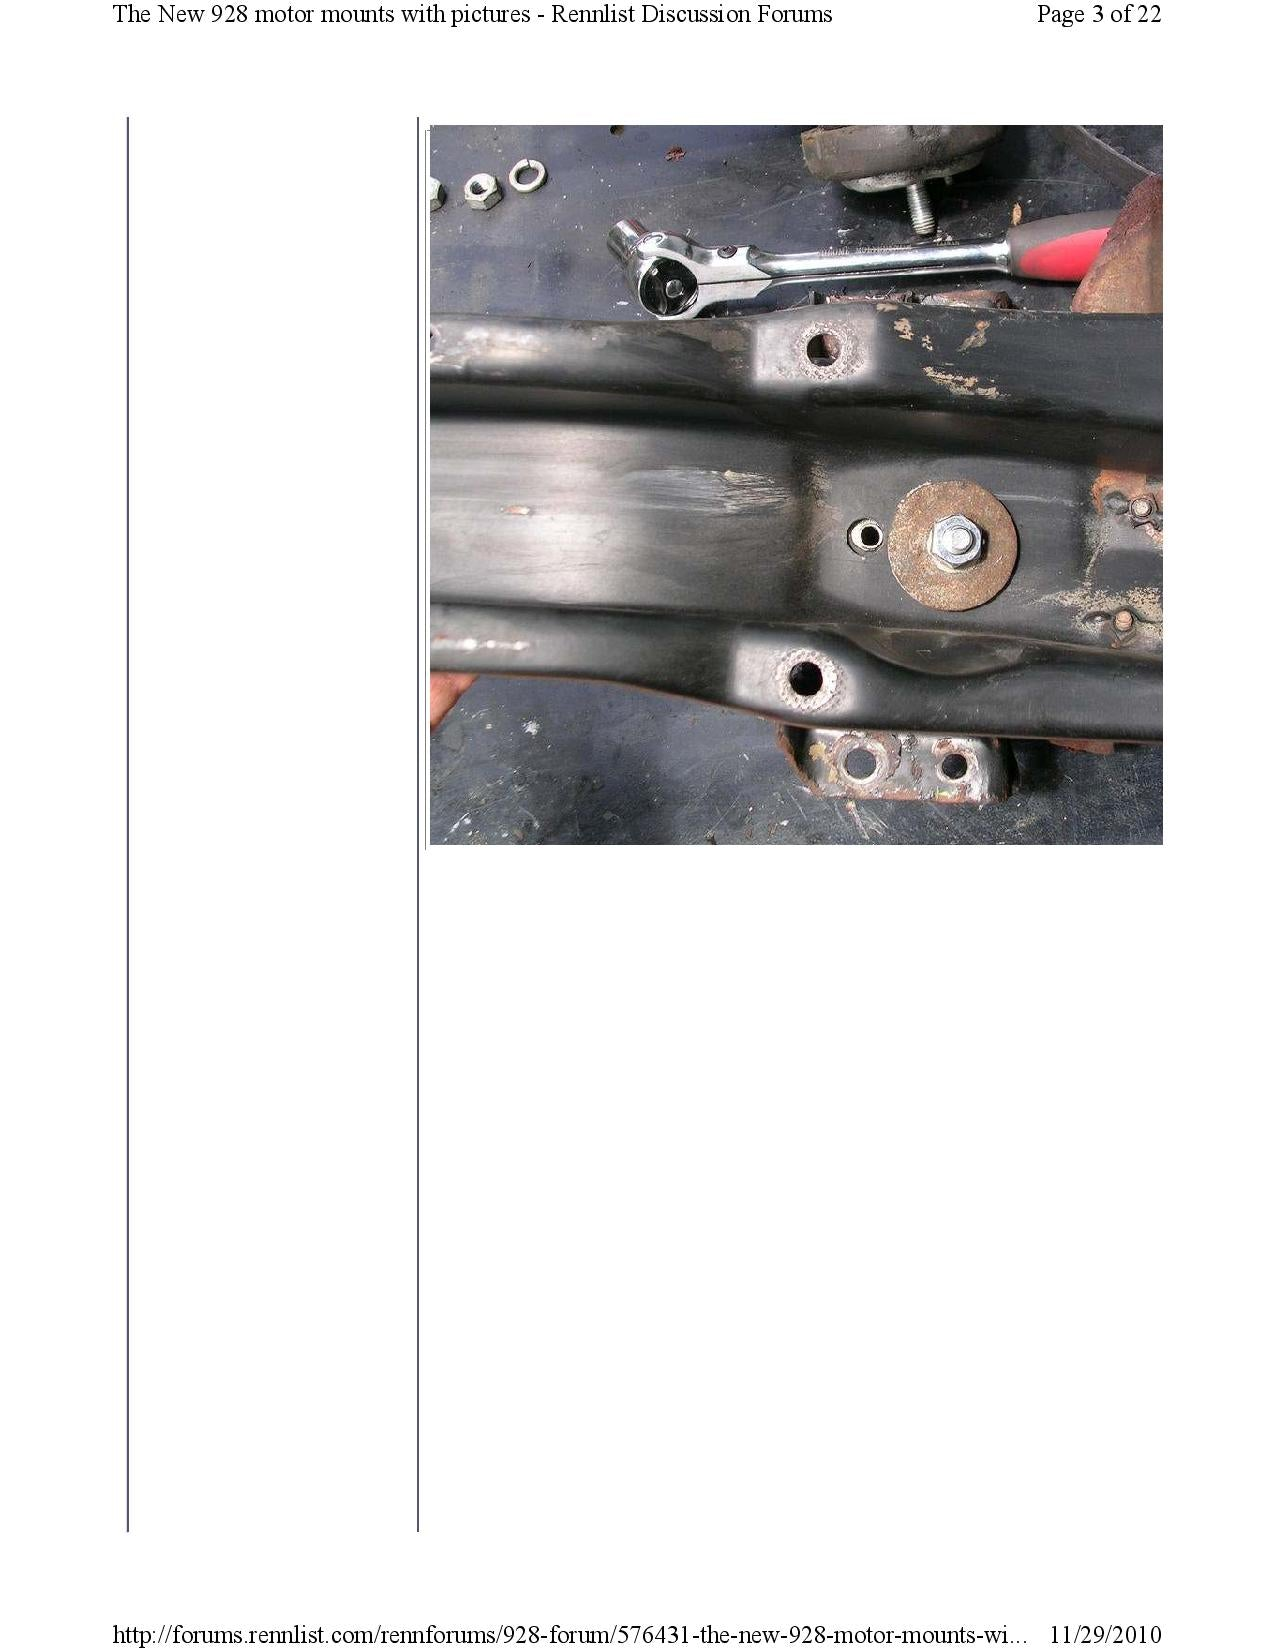 New 928 motor mounts with pictures pg3